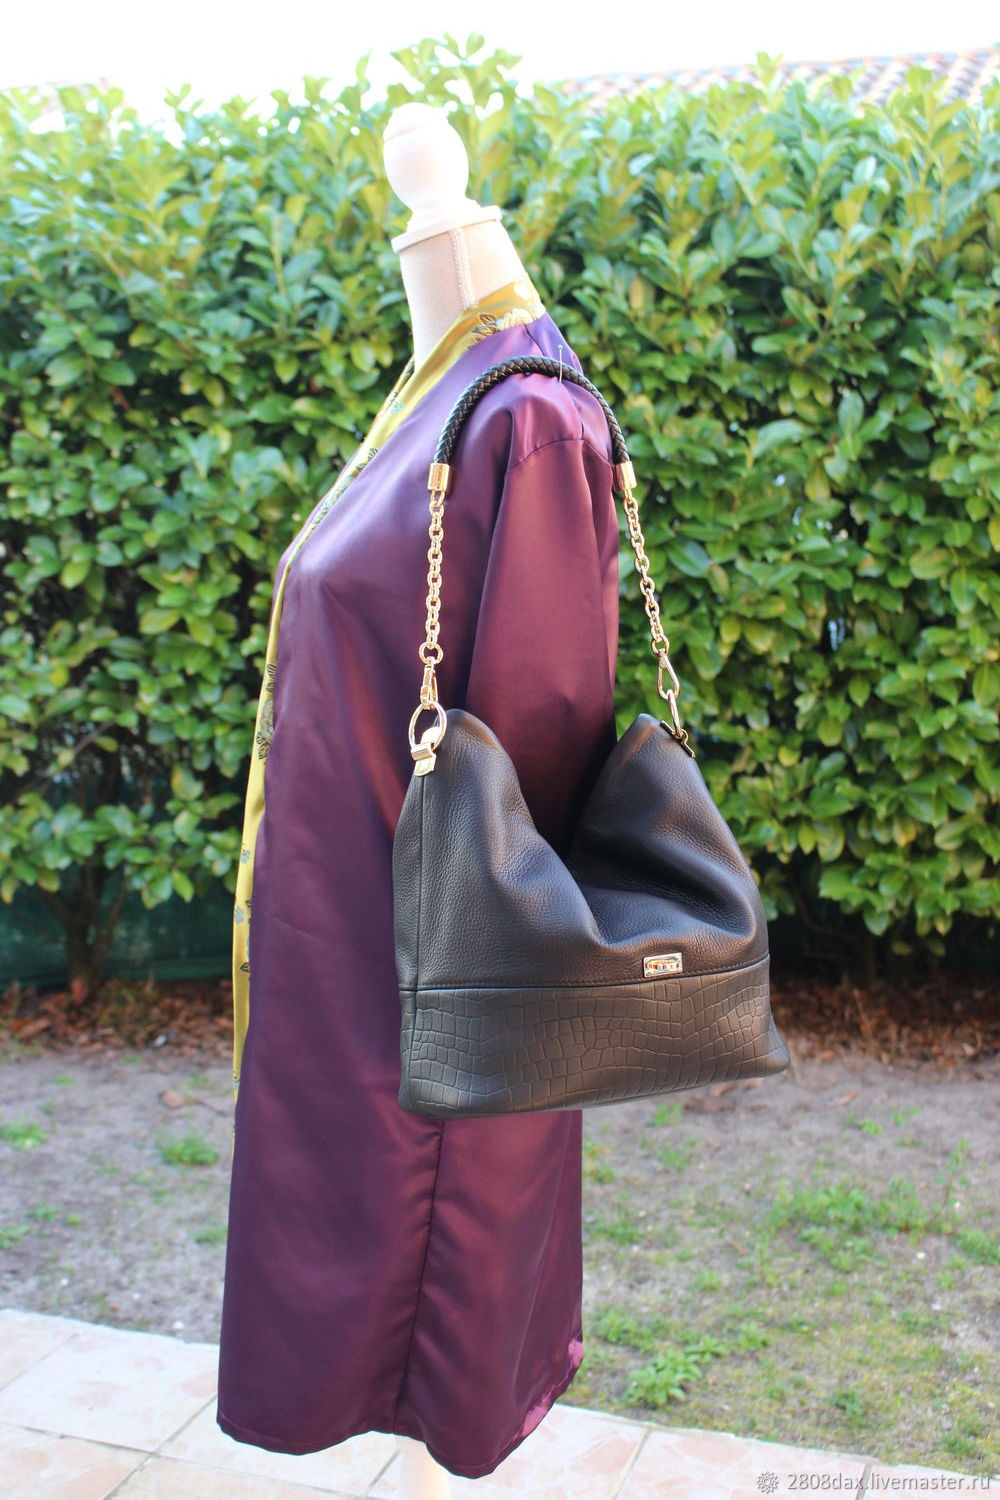 a611423fcd31b Black leather hobo bag with braided handle – shop online on Livemaster with  shipping - I45HHCOM | Bordeaux